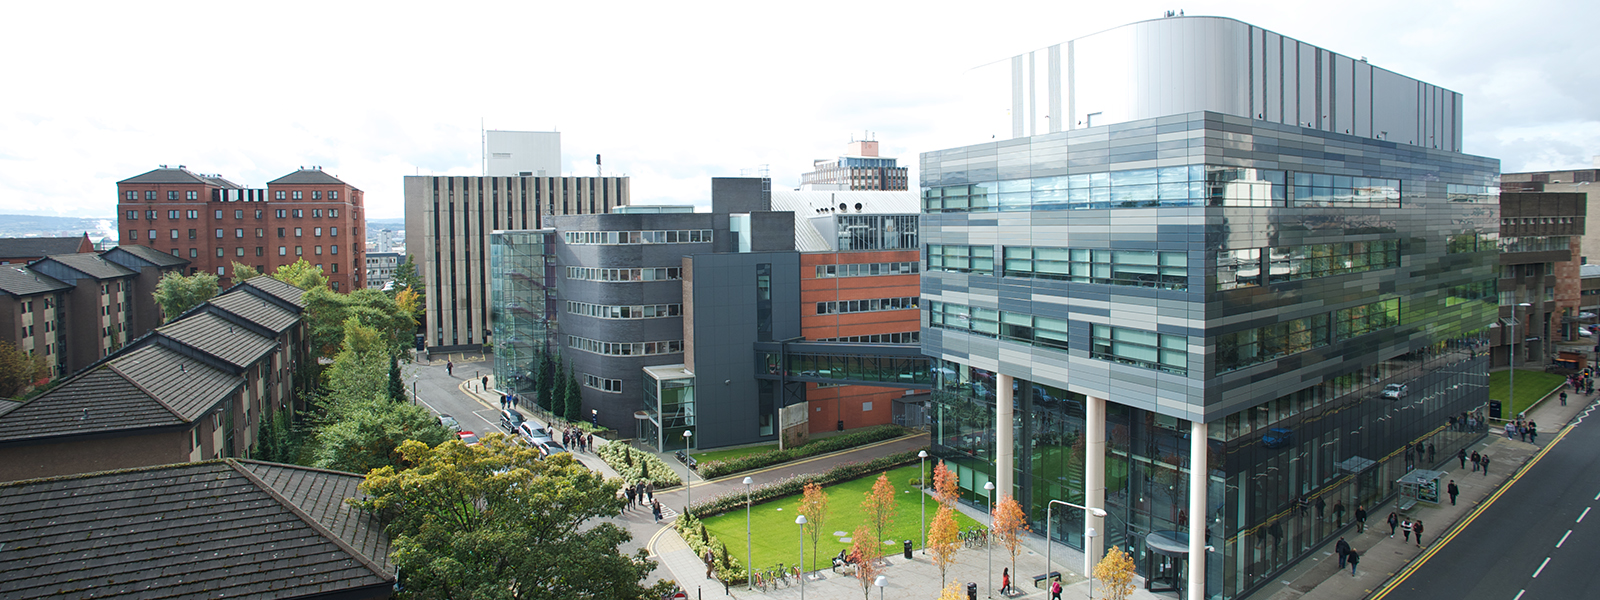 Strathclyde Institute of Pharmacy and Biomedical Sciences (SIPBS) building